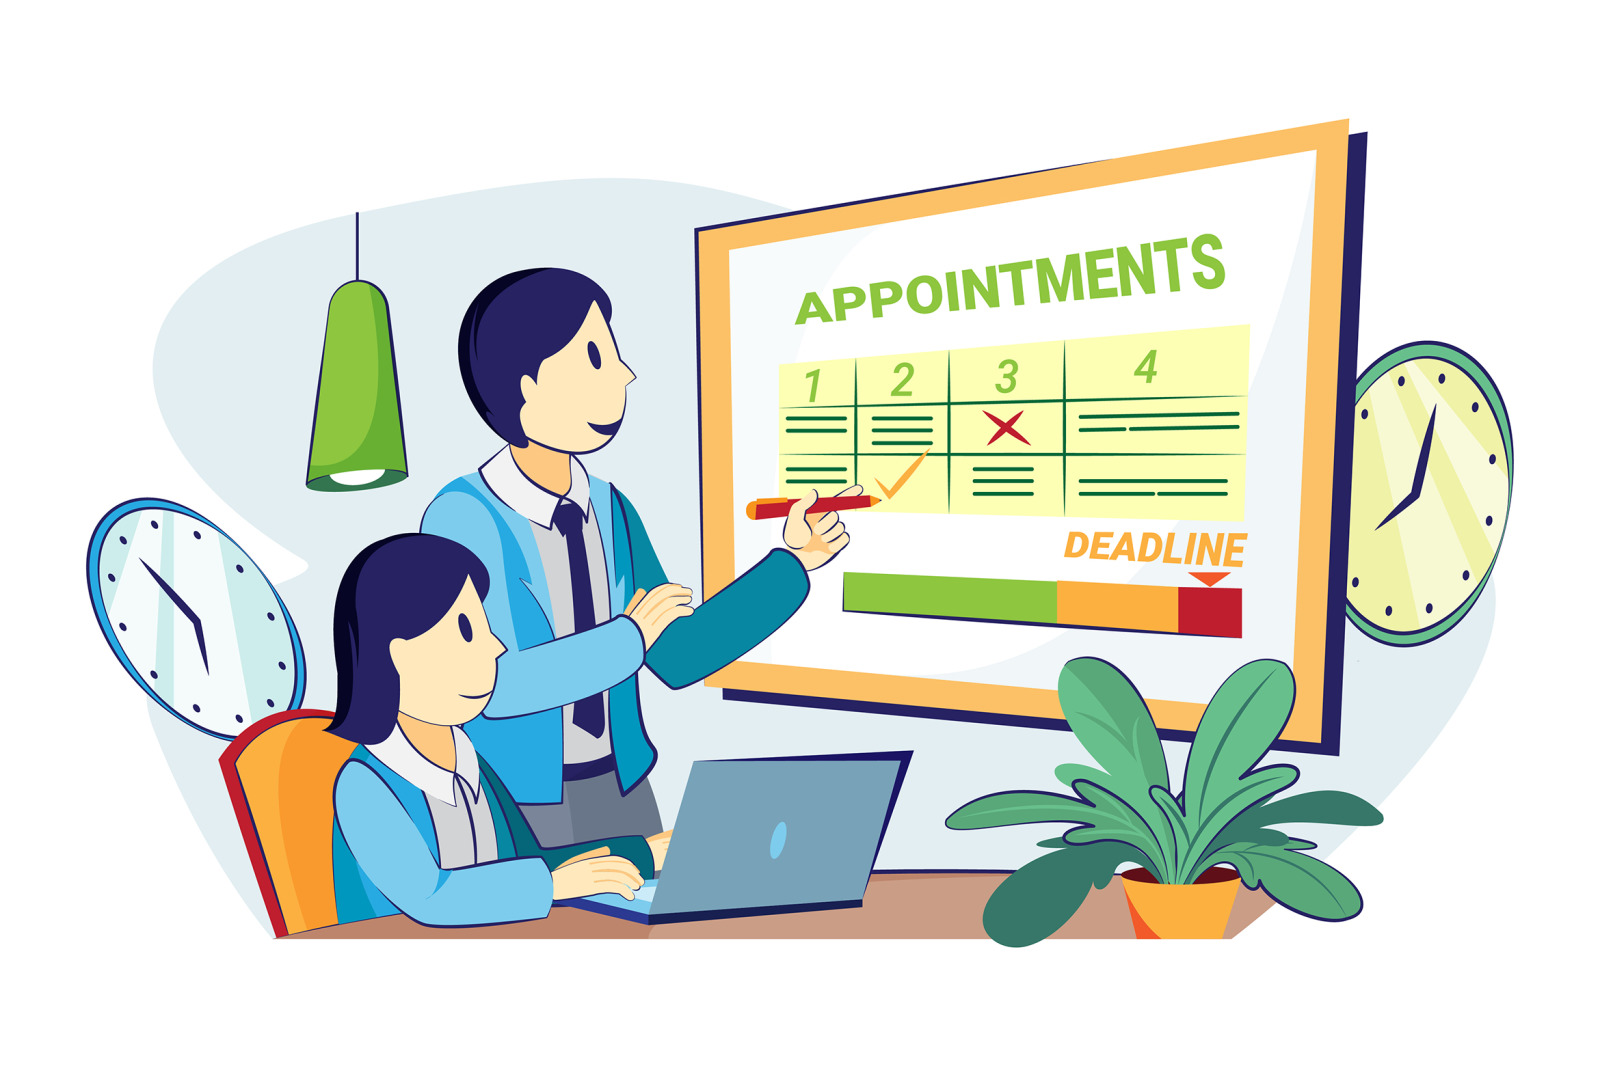 M348_Appointment Scheduling Illustrations